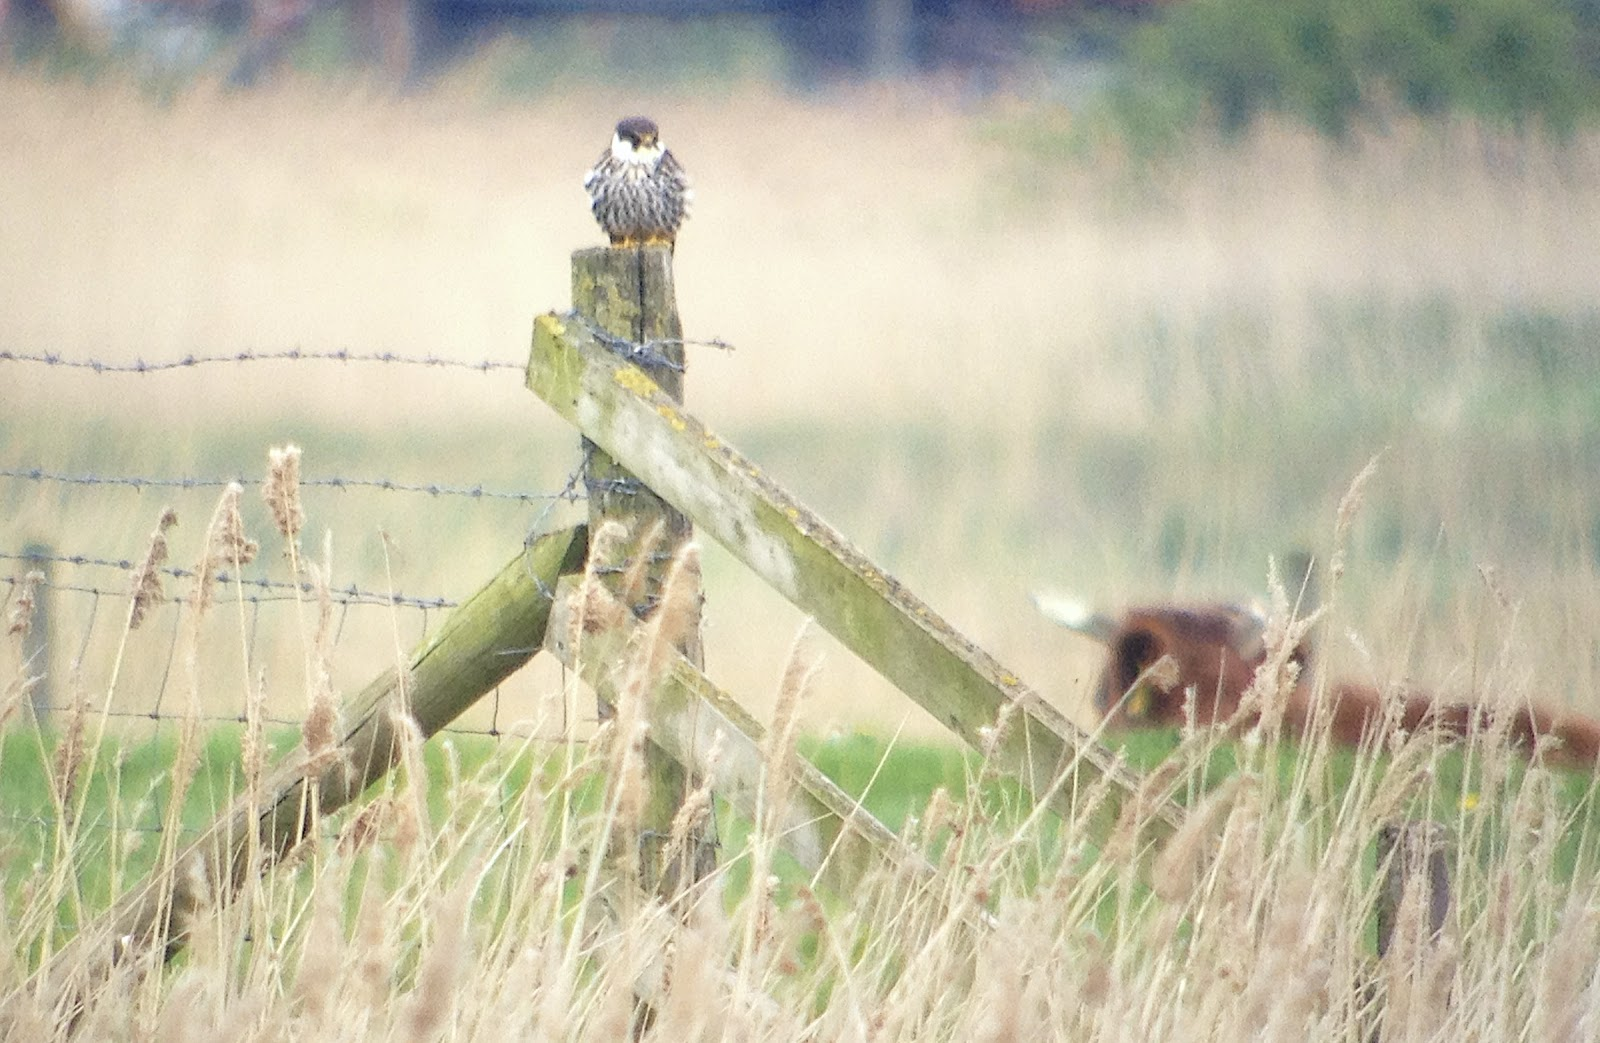 Digiscoping, Rainham, RSPB, Birds, Photography